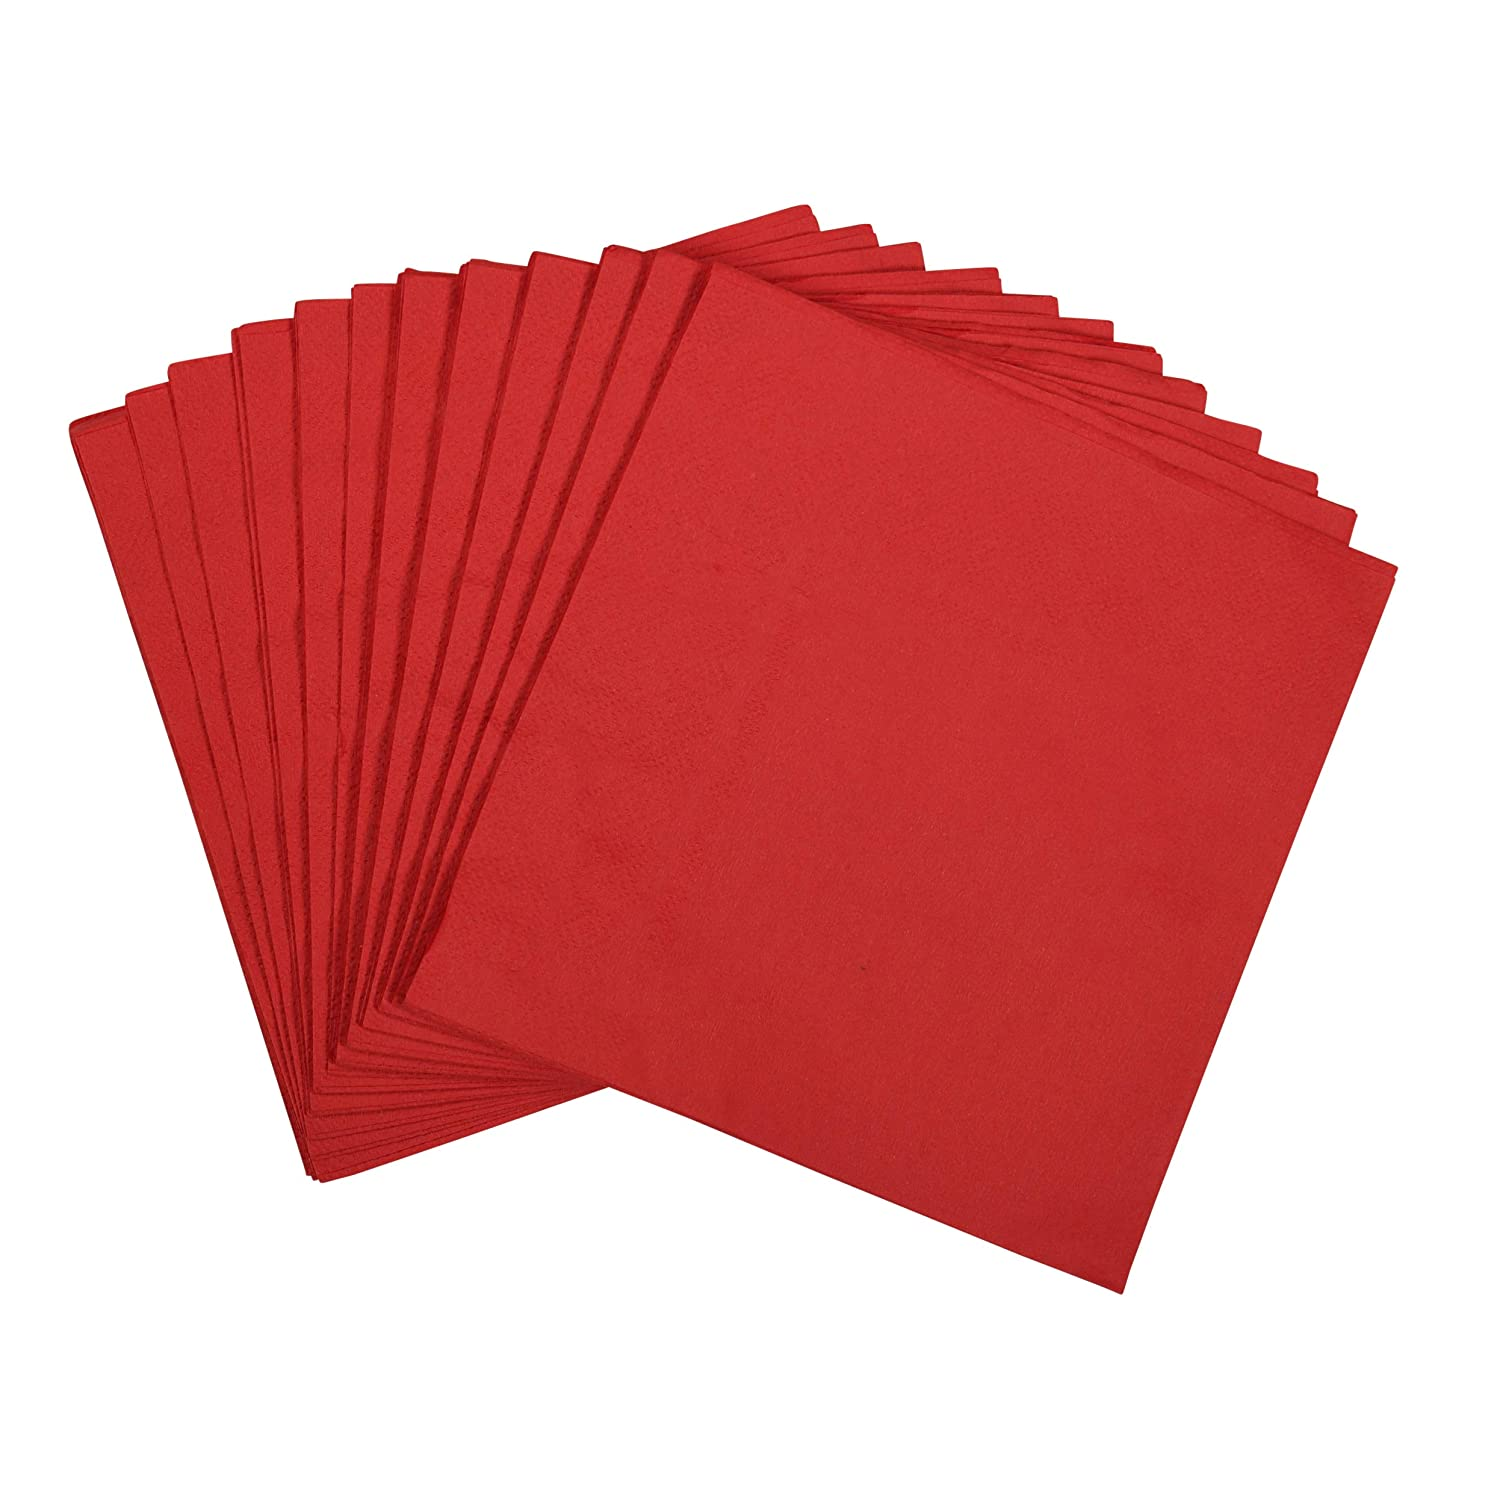 "100 Large Red Paper Napkins | 2-Ply Lunch Size Disposable Napkins | Perfect Pop of Color for Parties, Weddings, Dinners, Luncheons by Dessie (13"" x13"" )"